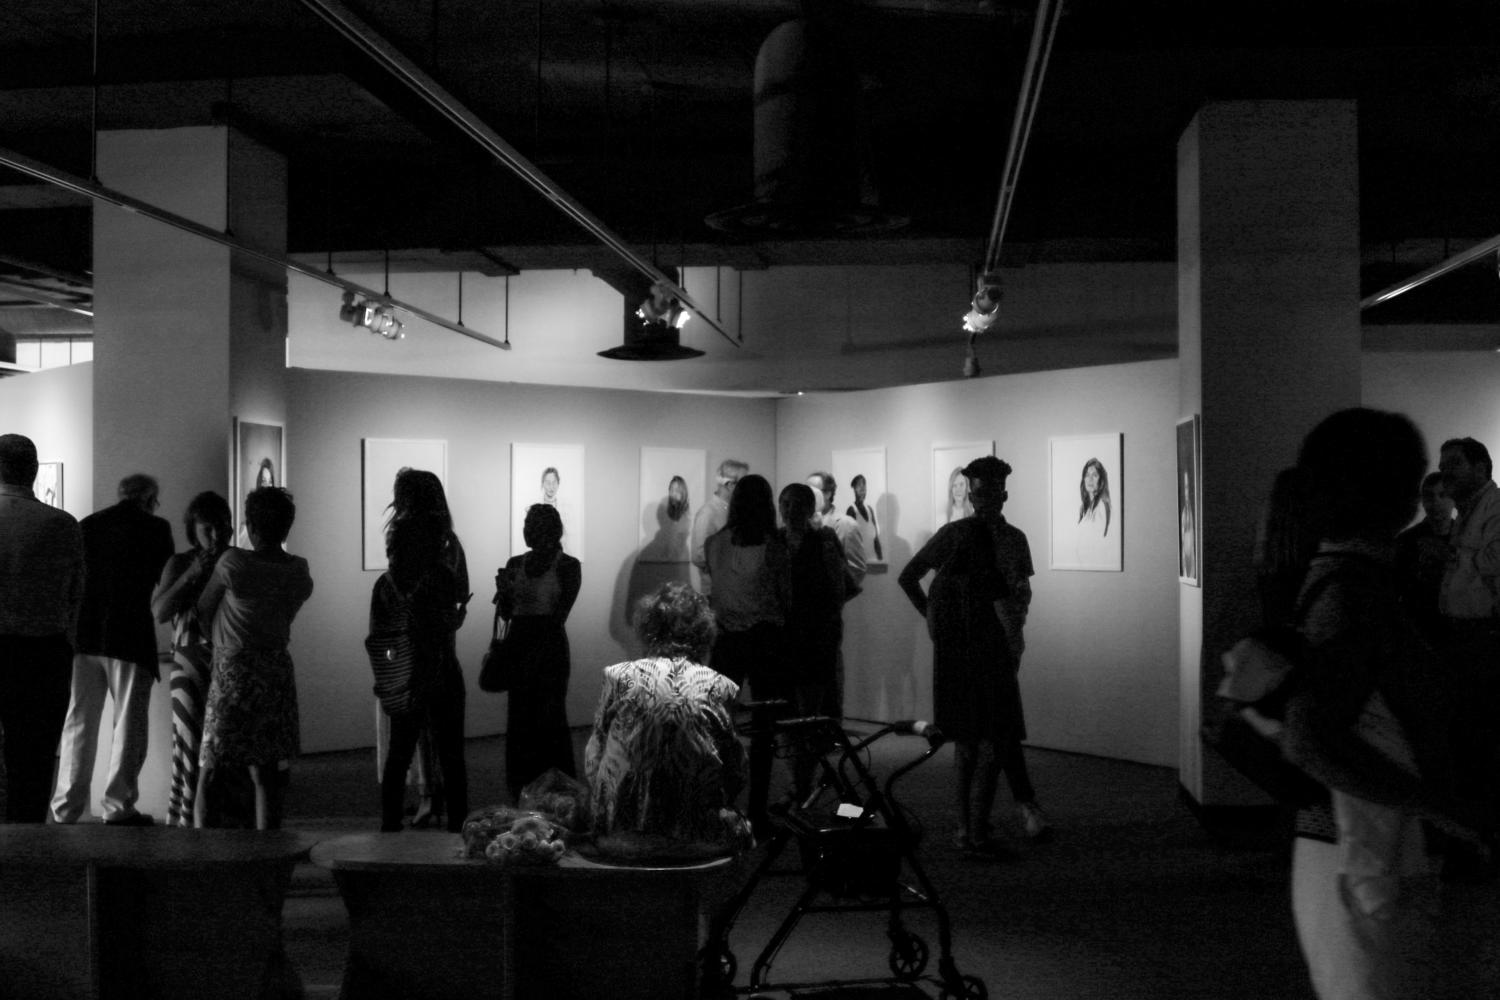 Attendees view the exhibits on display at The B.F.A. and B.A. Senior Show in the Colins C. Biboll Art Gallery. The six seniors present showcased their four years of visual art tutelage Photo credit: Matthew Dietrich